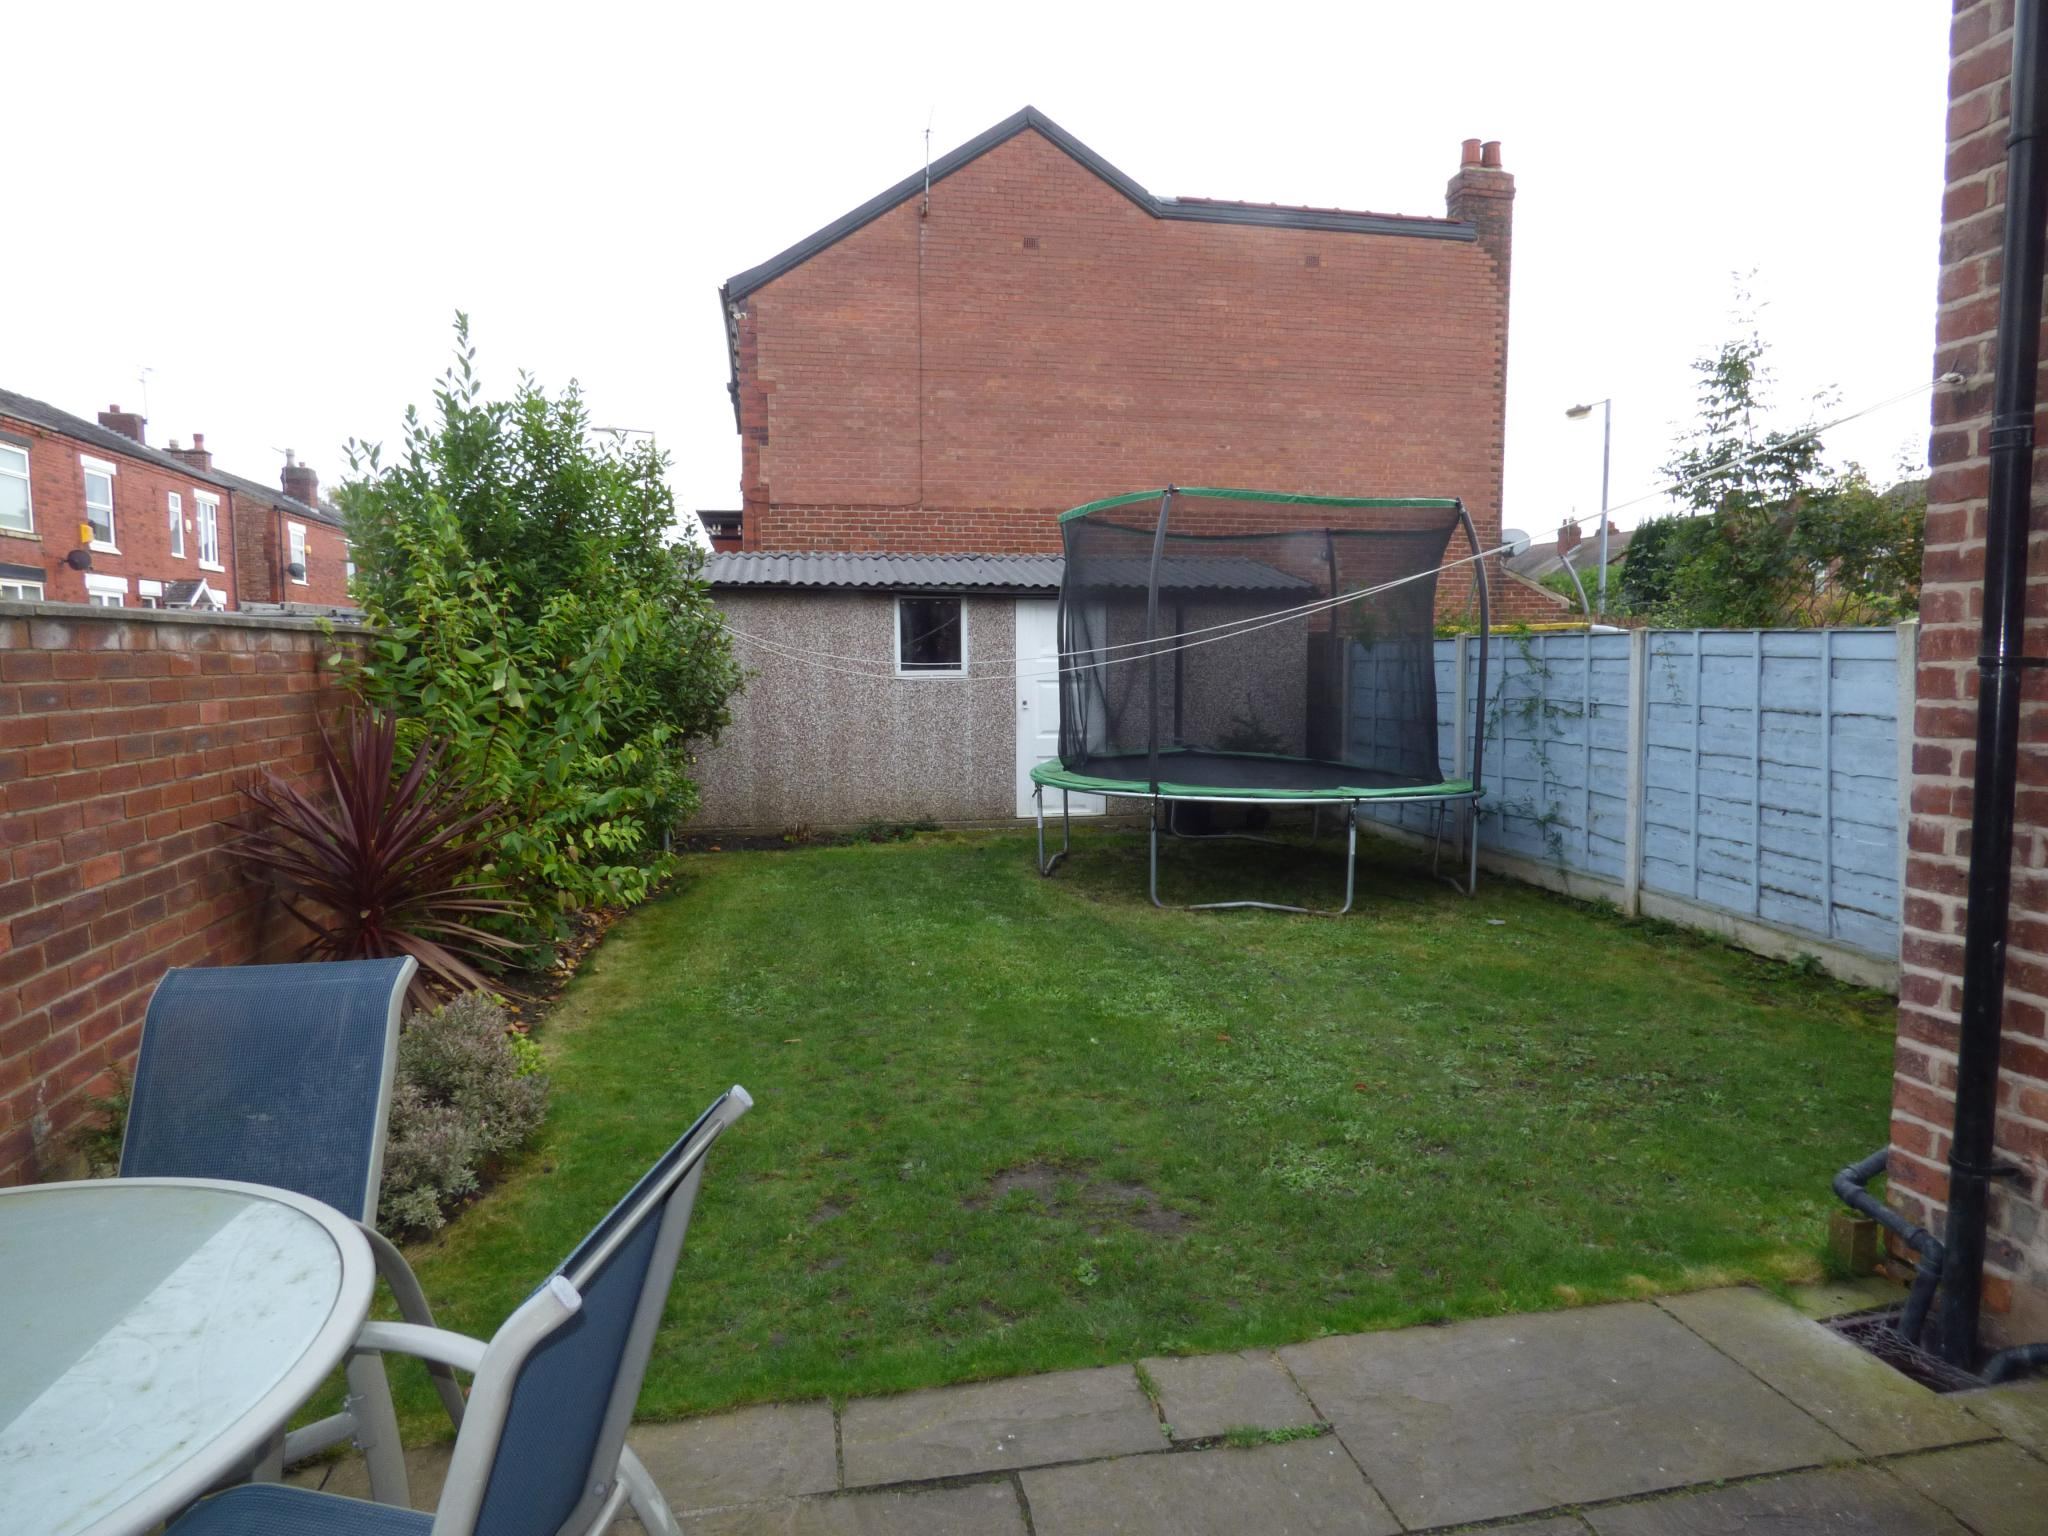 4 bedroom end terraced house for sale in 13 norwood road